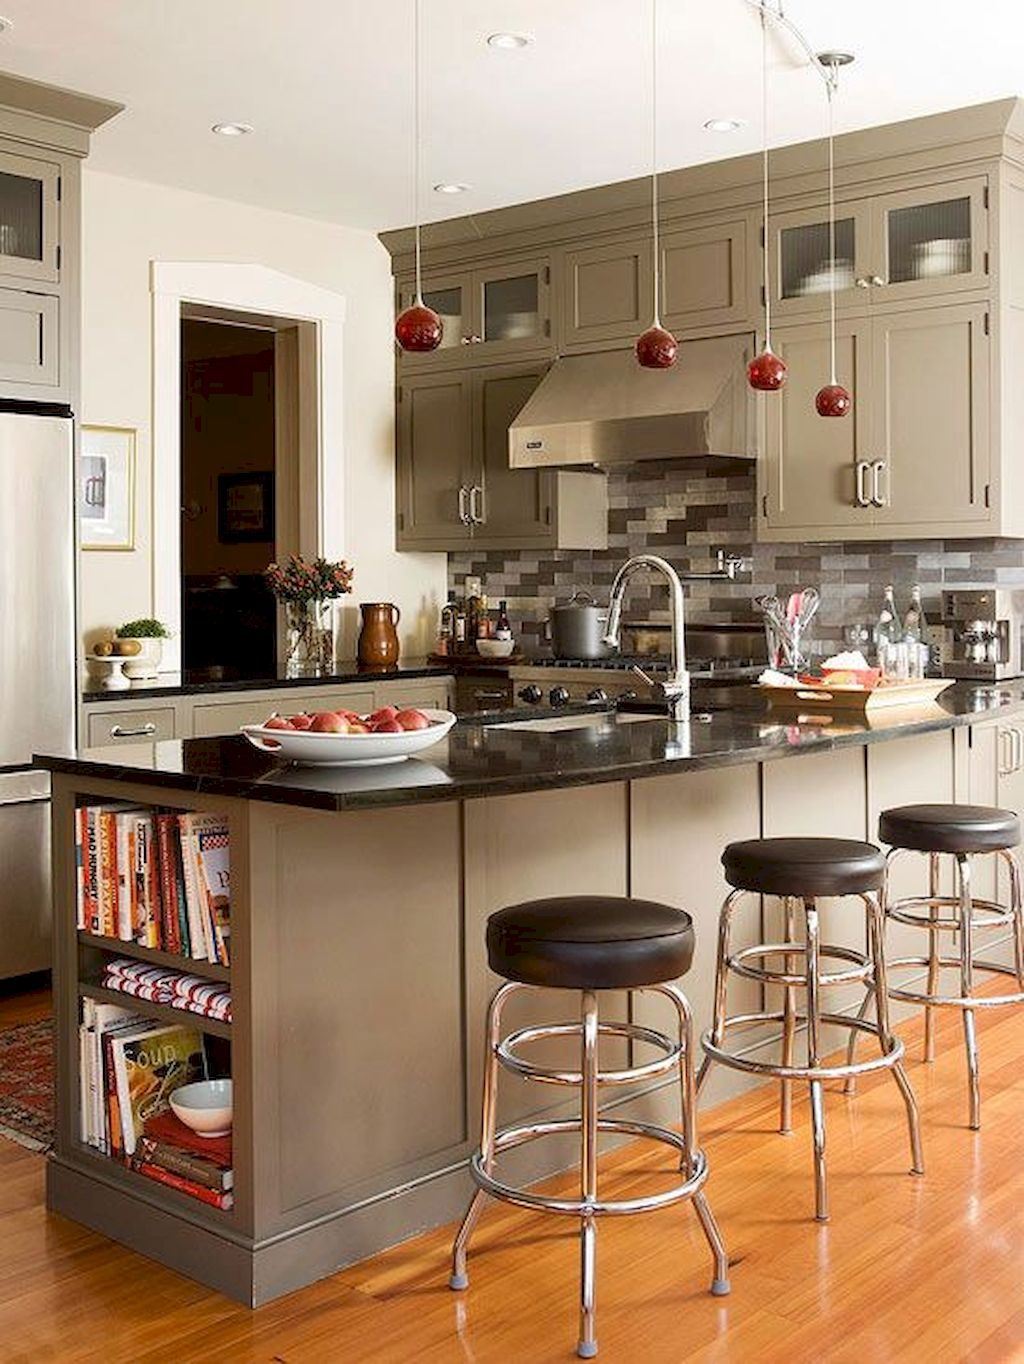 Kitchen Plan And Design For Small Room (41)